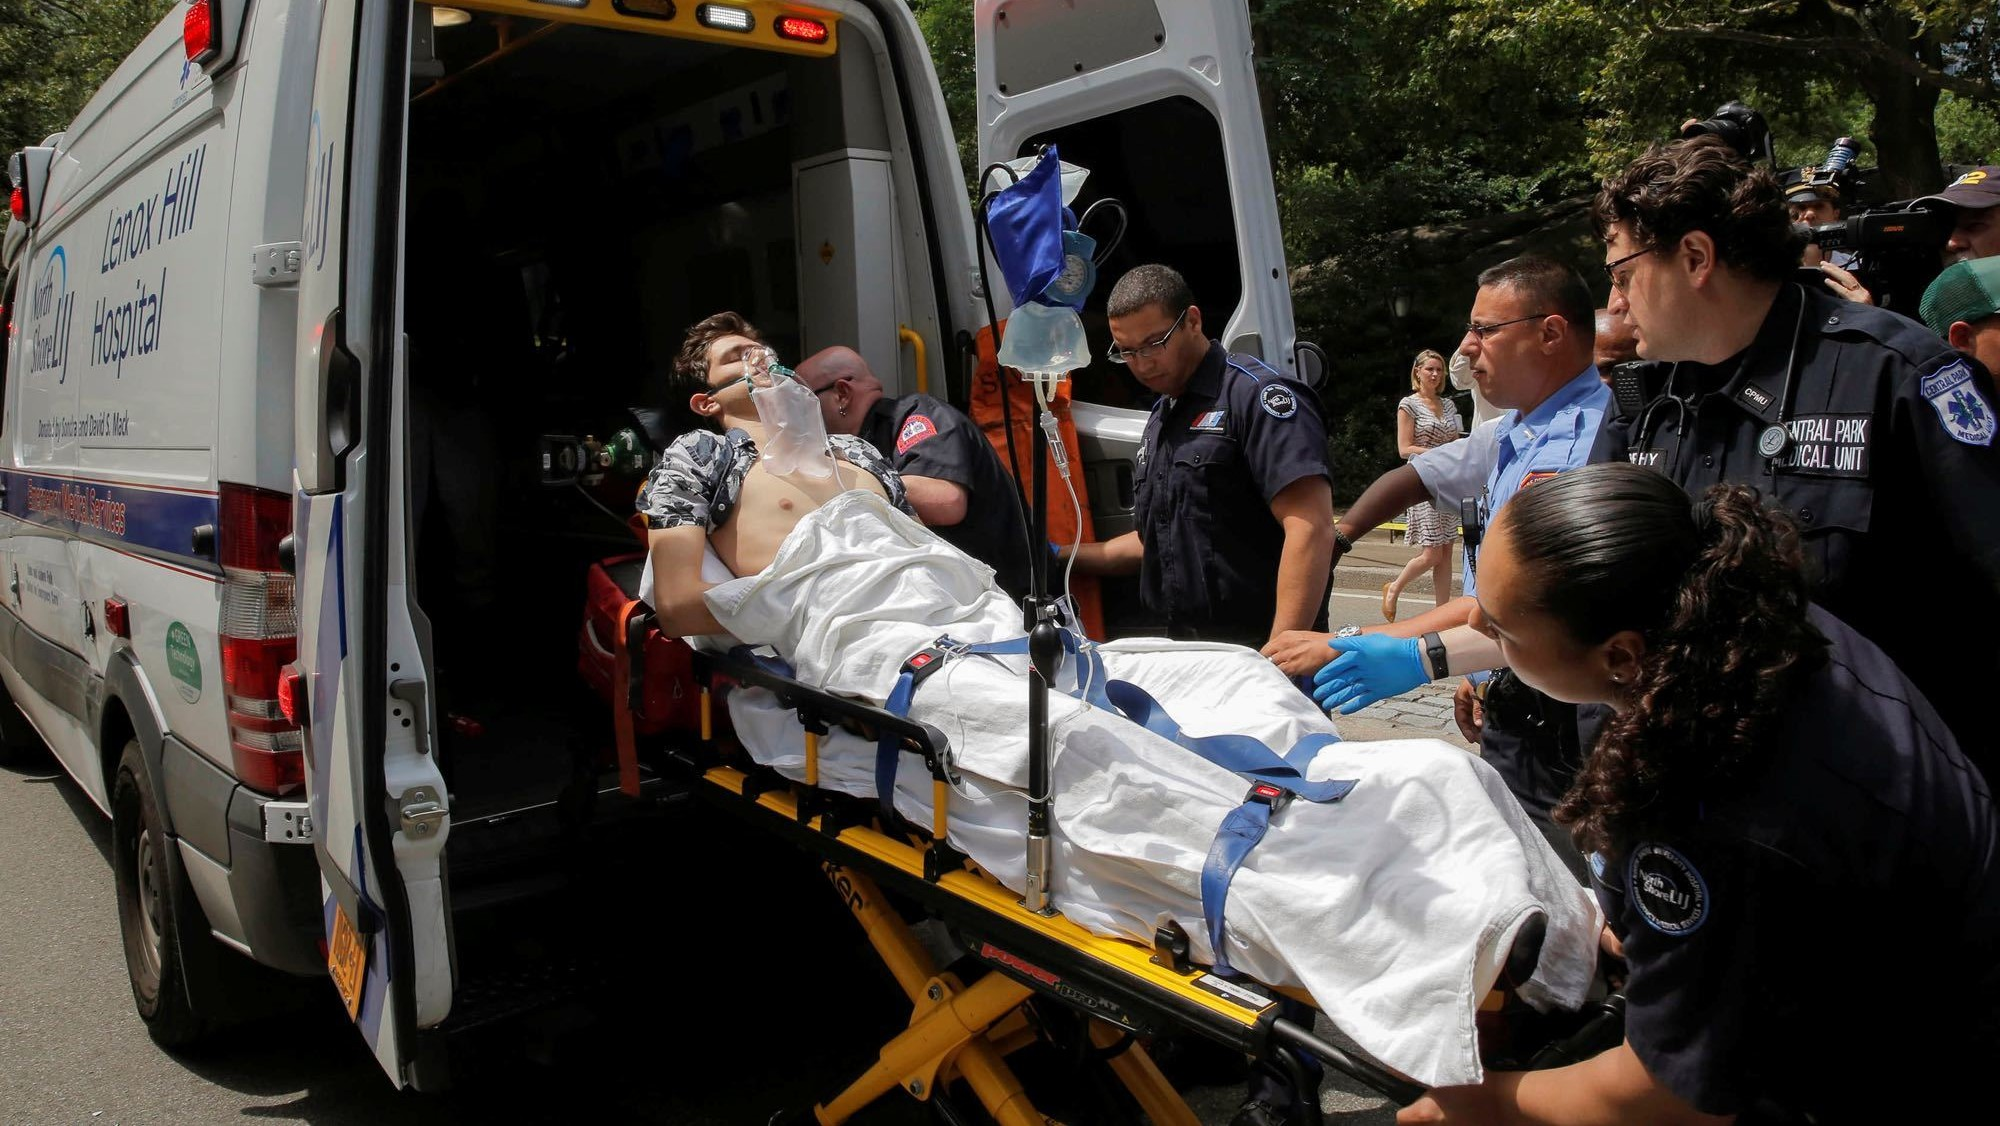 Blast severs tourist's foot in Central Park explosion